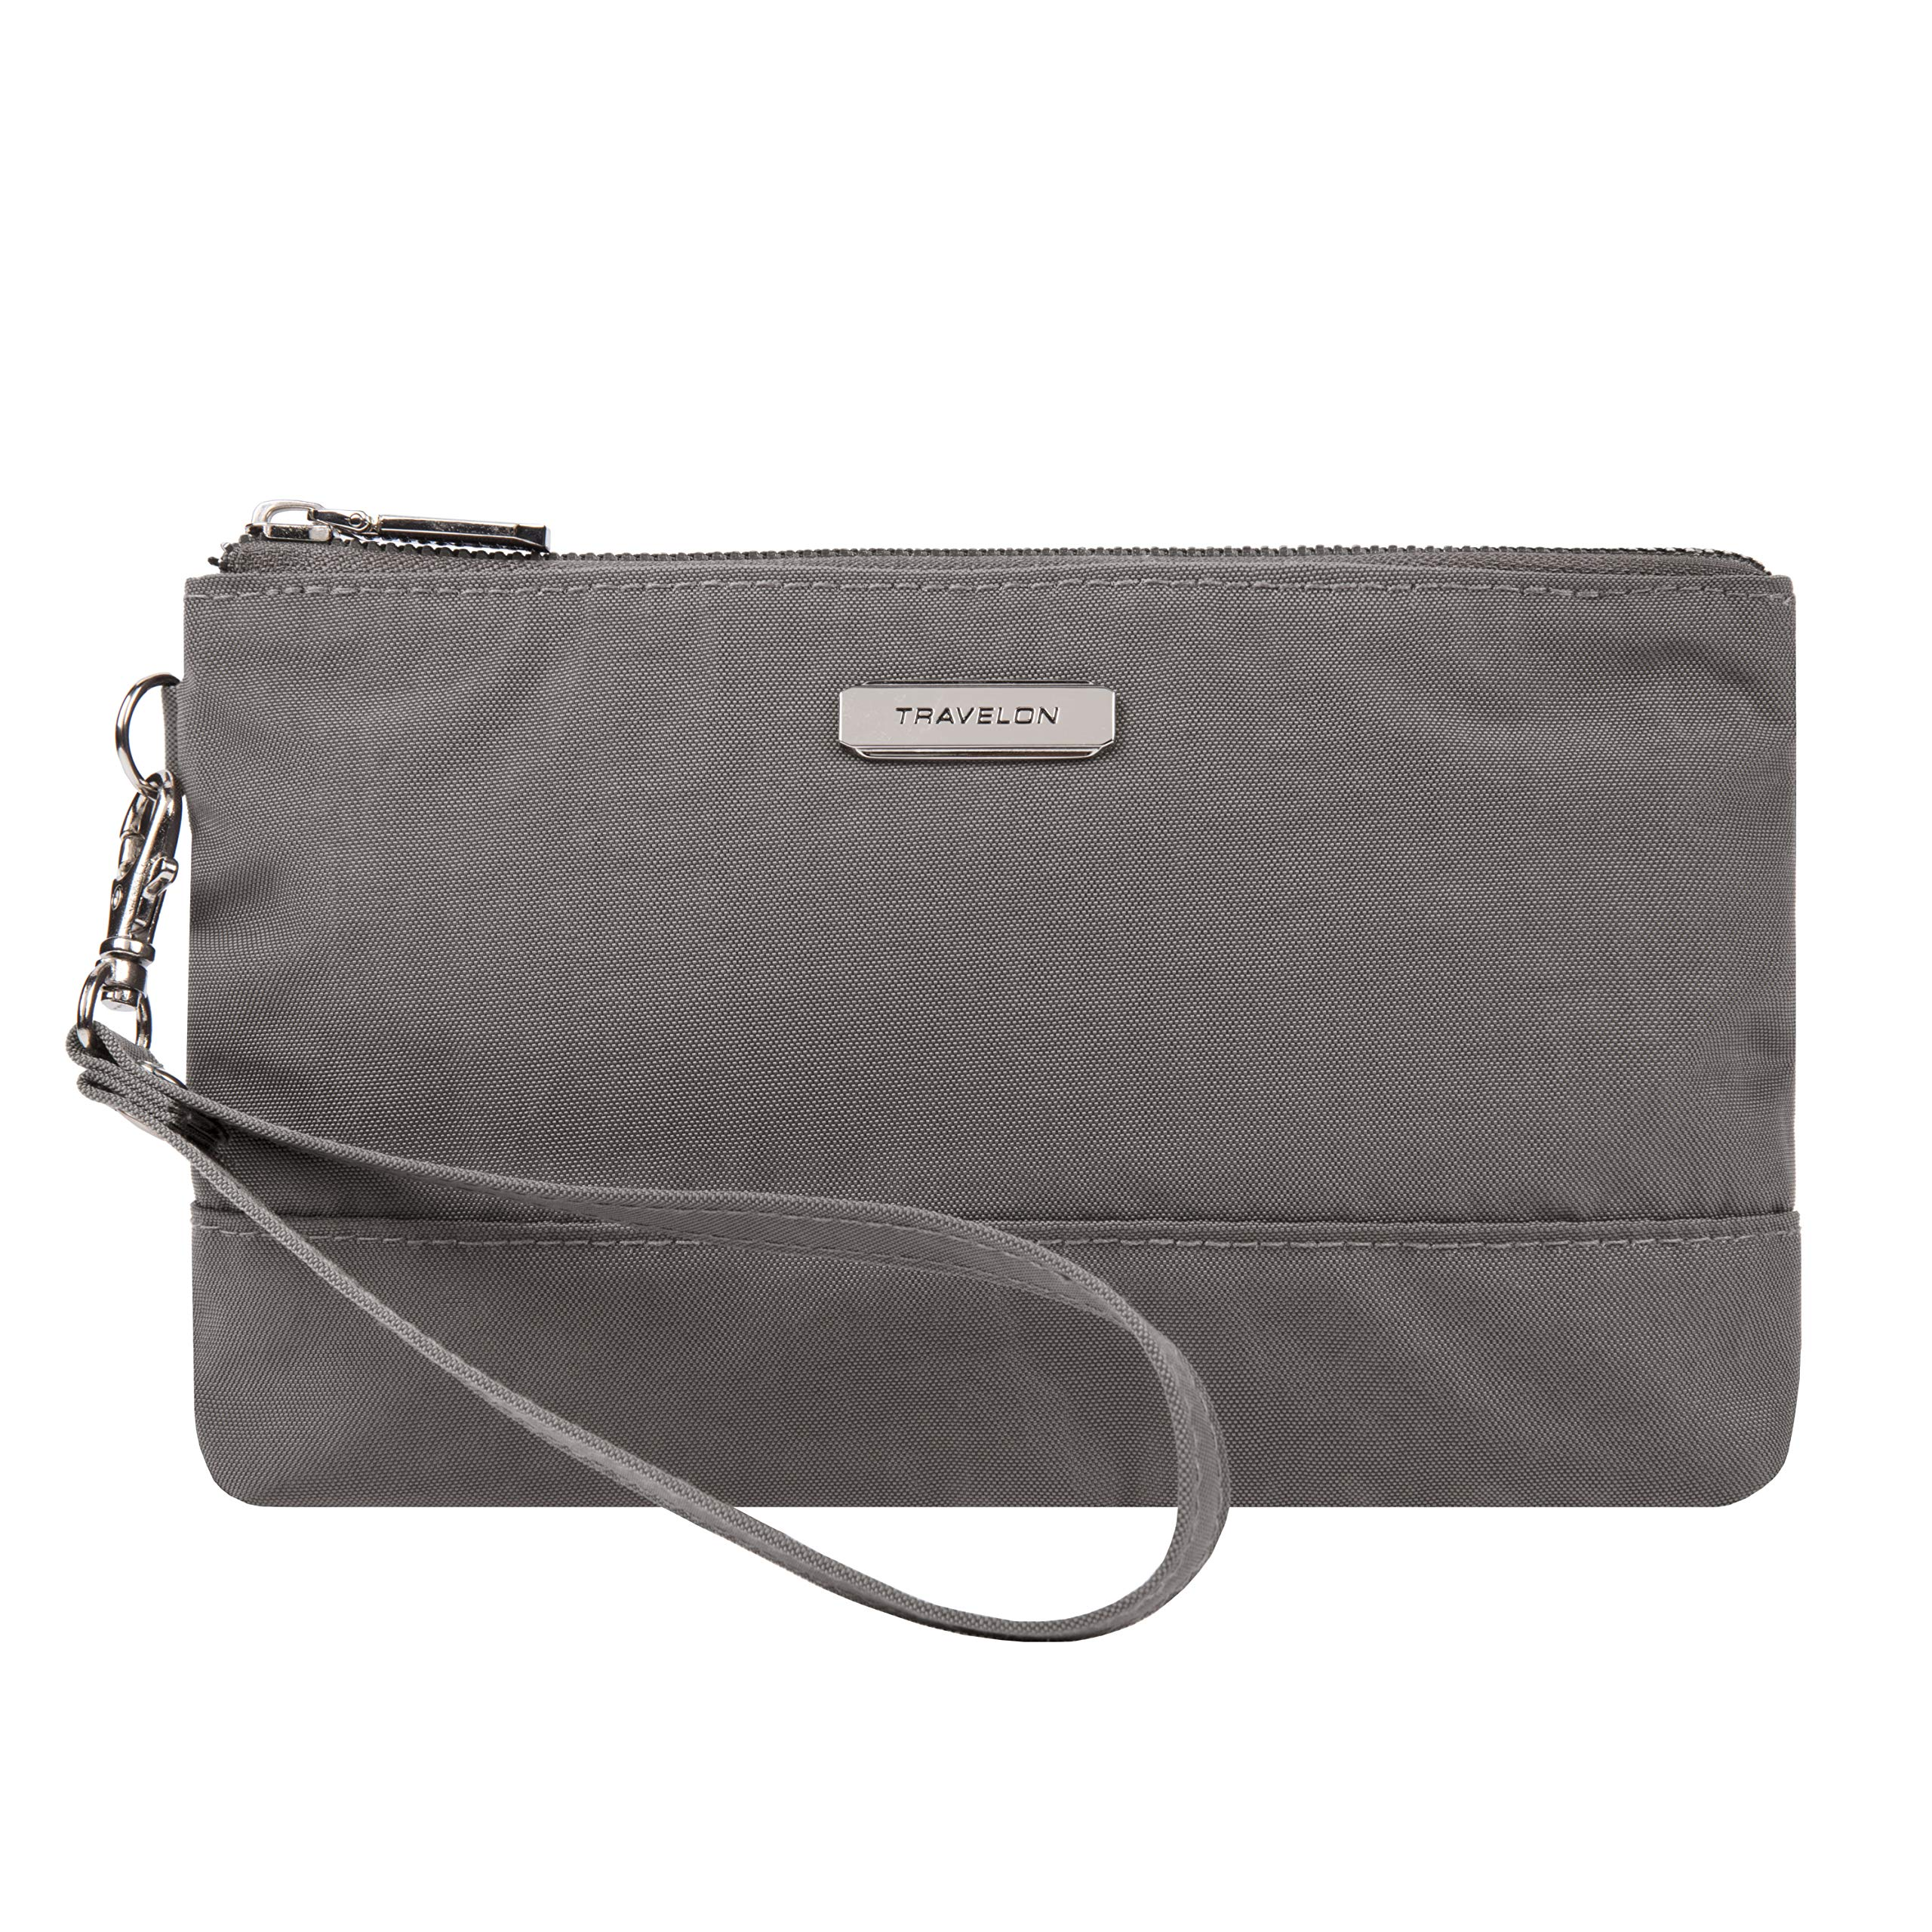 Travelon RFID Blocking Wristlet Clutch, Smoke by Travelon